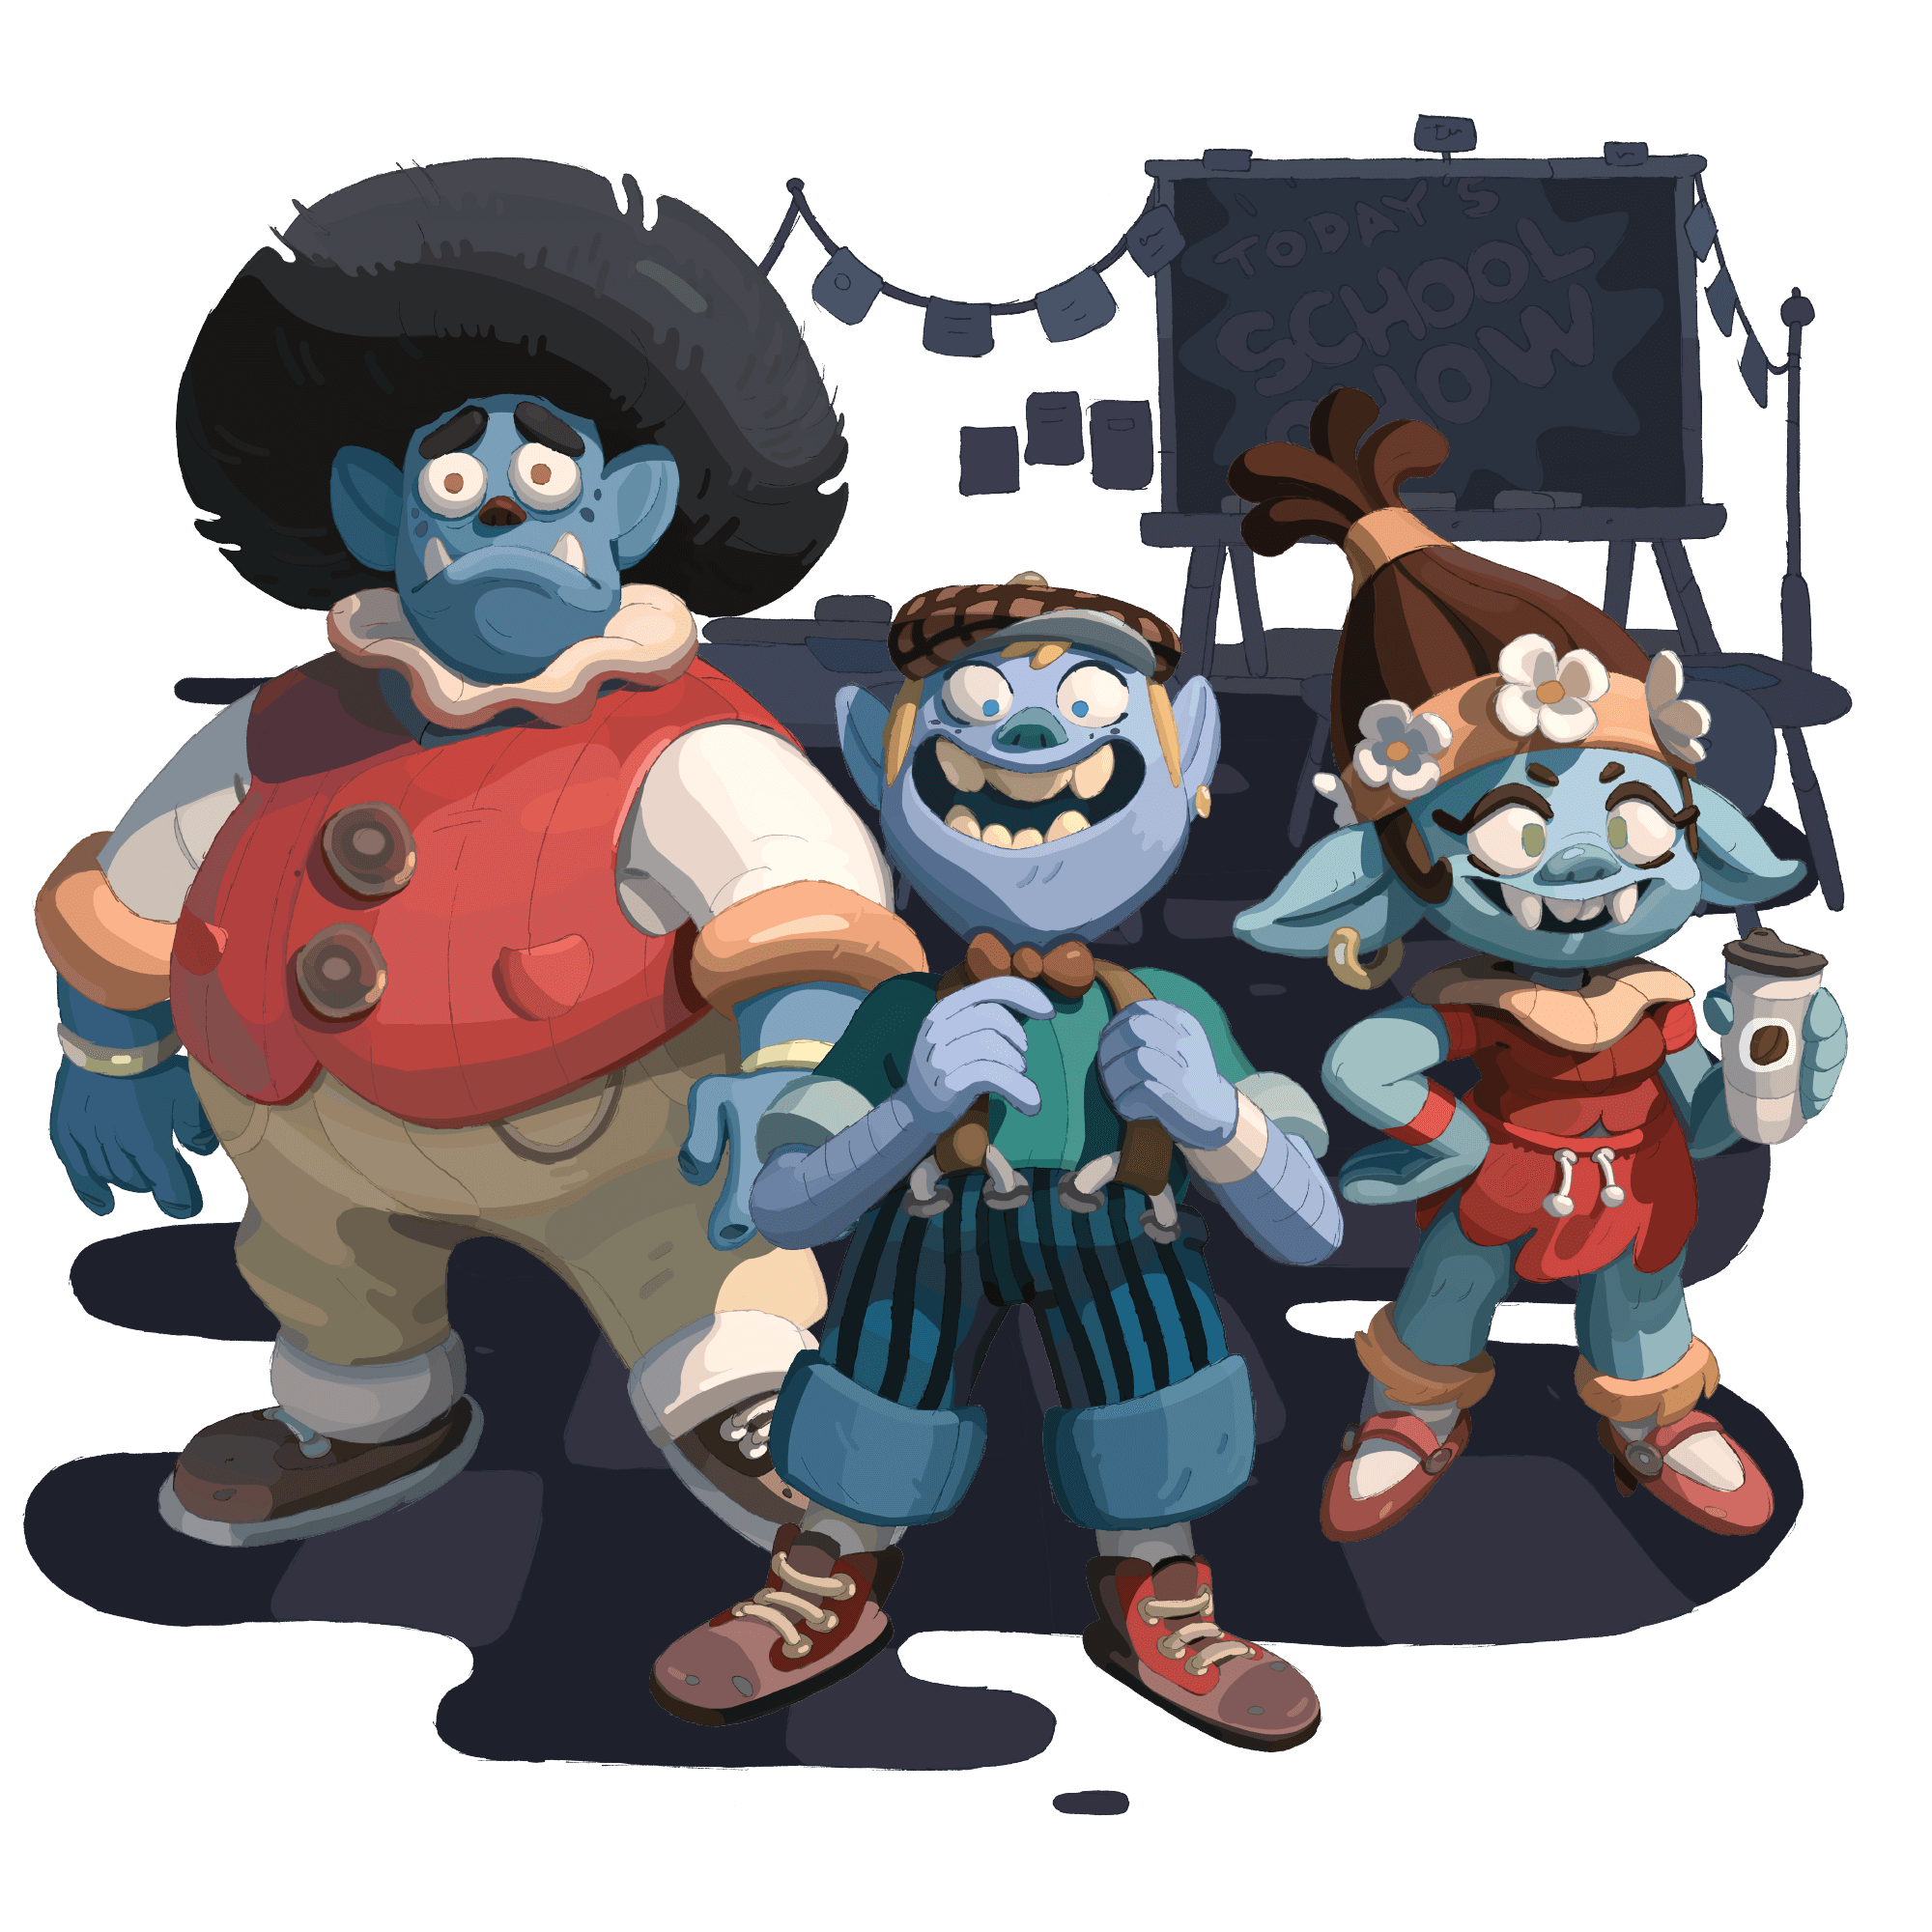 Three stylized trolls standing in front of an abstract school background.